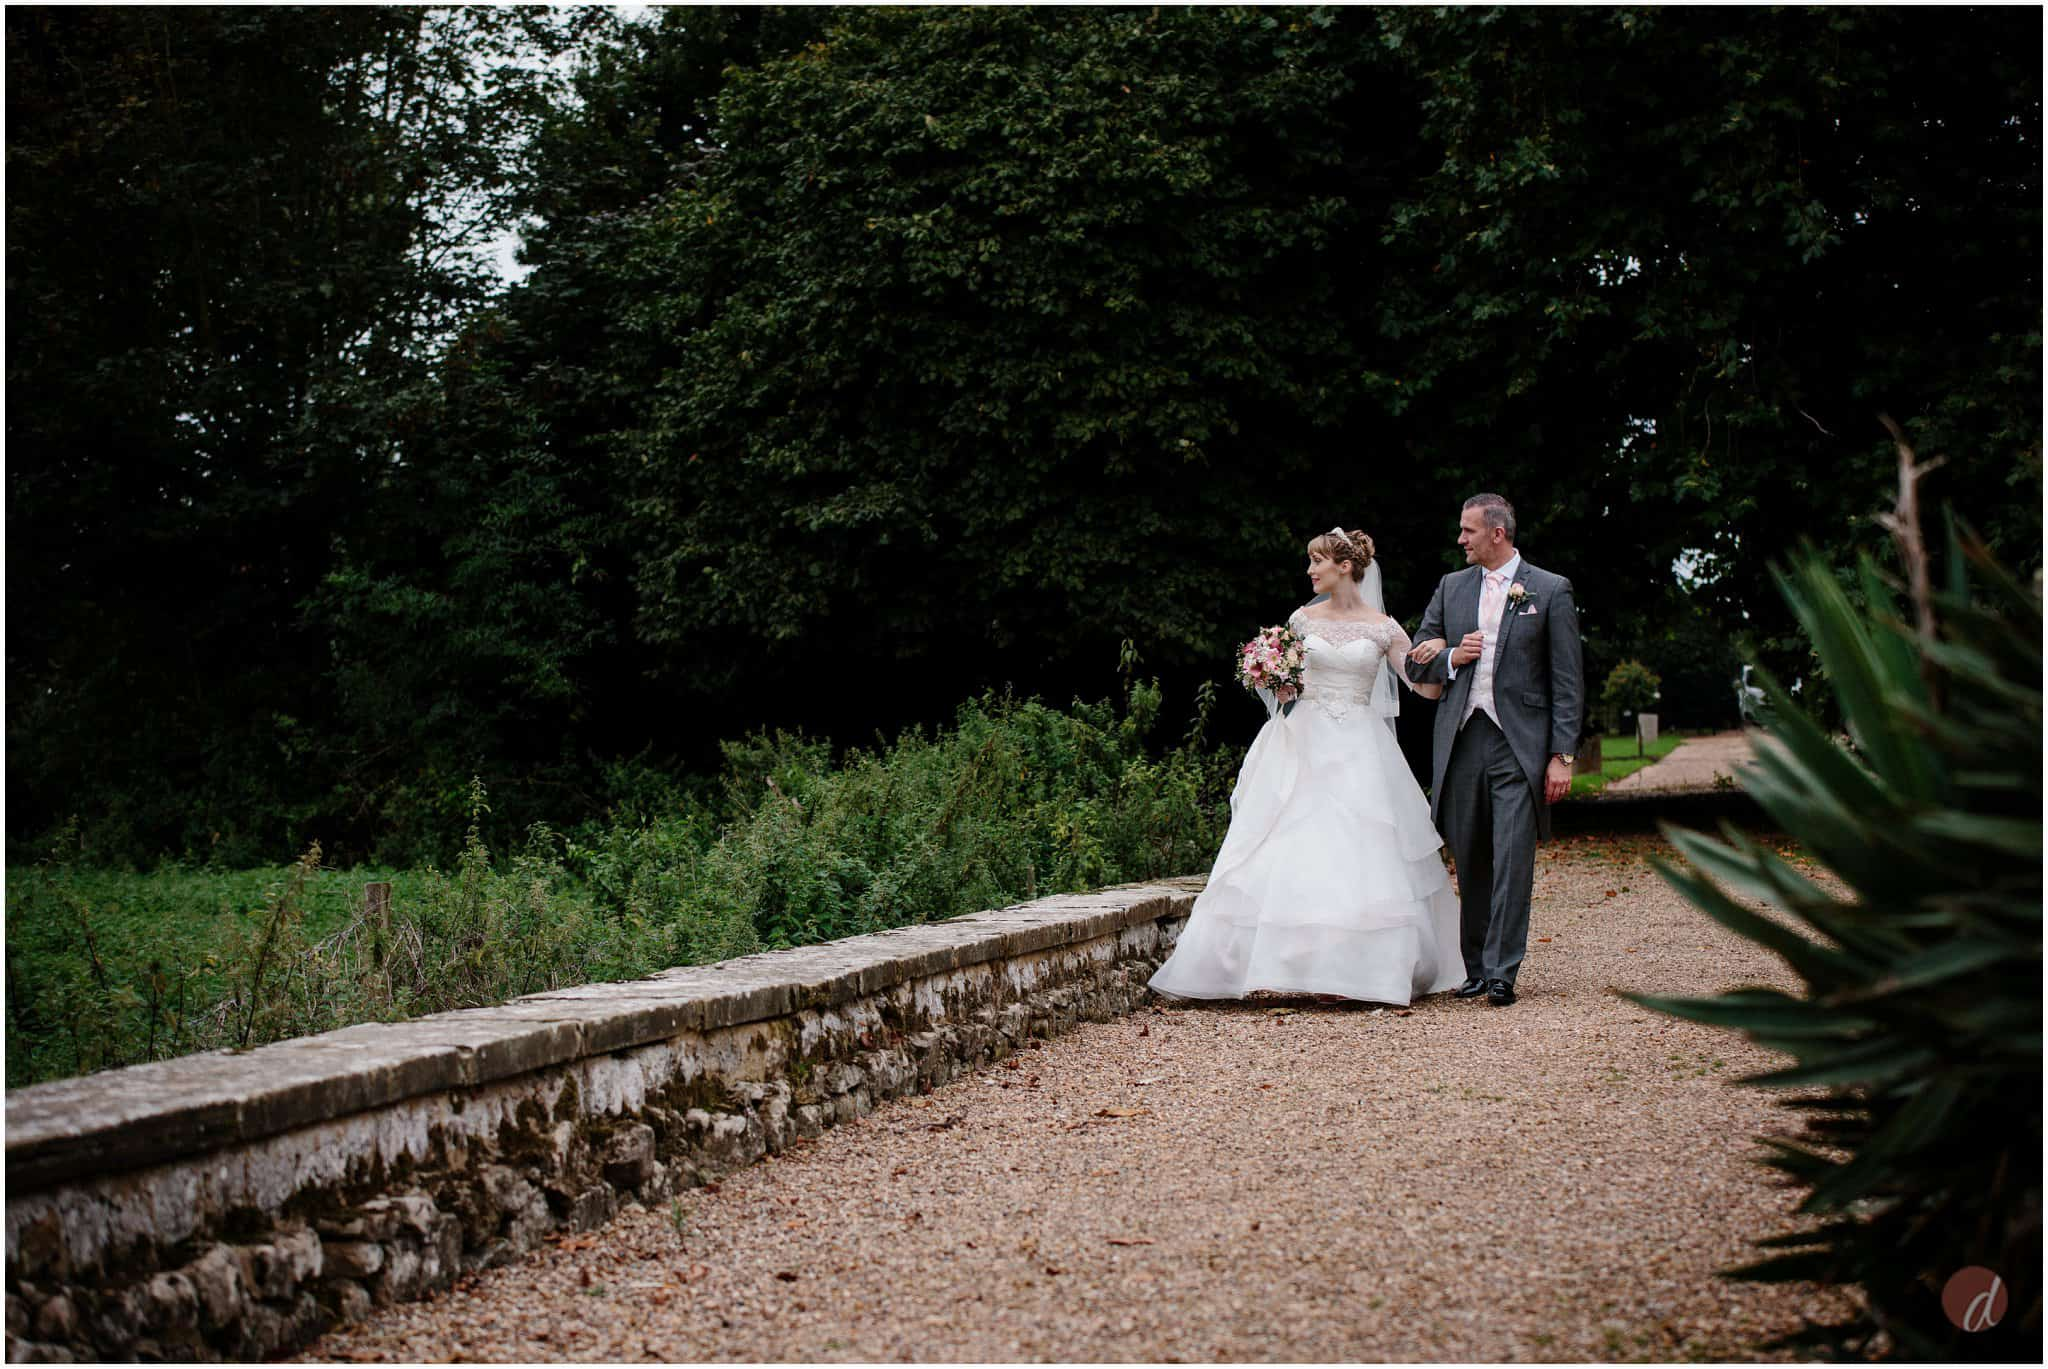 oxonhoath wedding venue